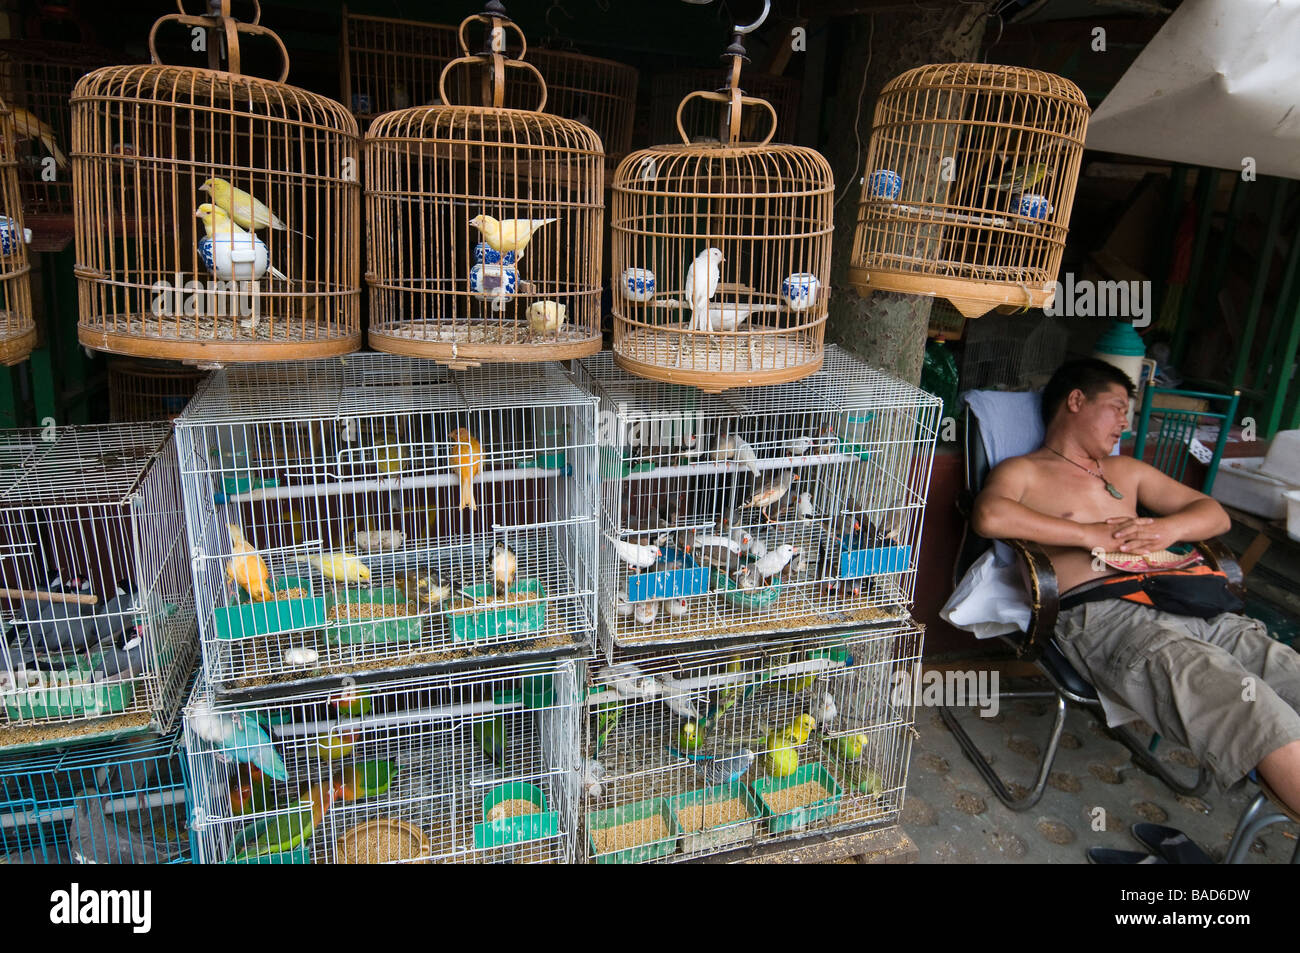 Caged song birds are for sale at the Shilihegiao Pet Market, Beijing, China - Stock Image